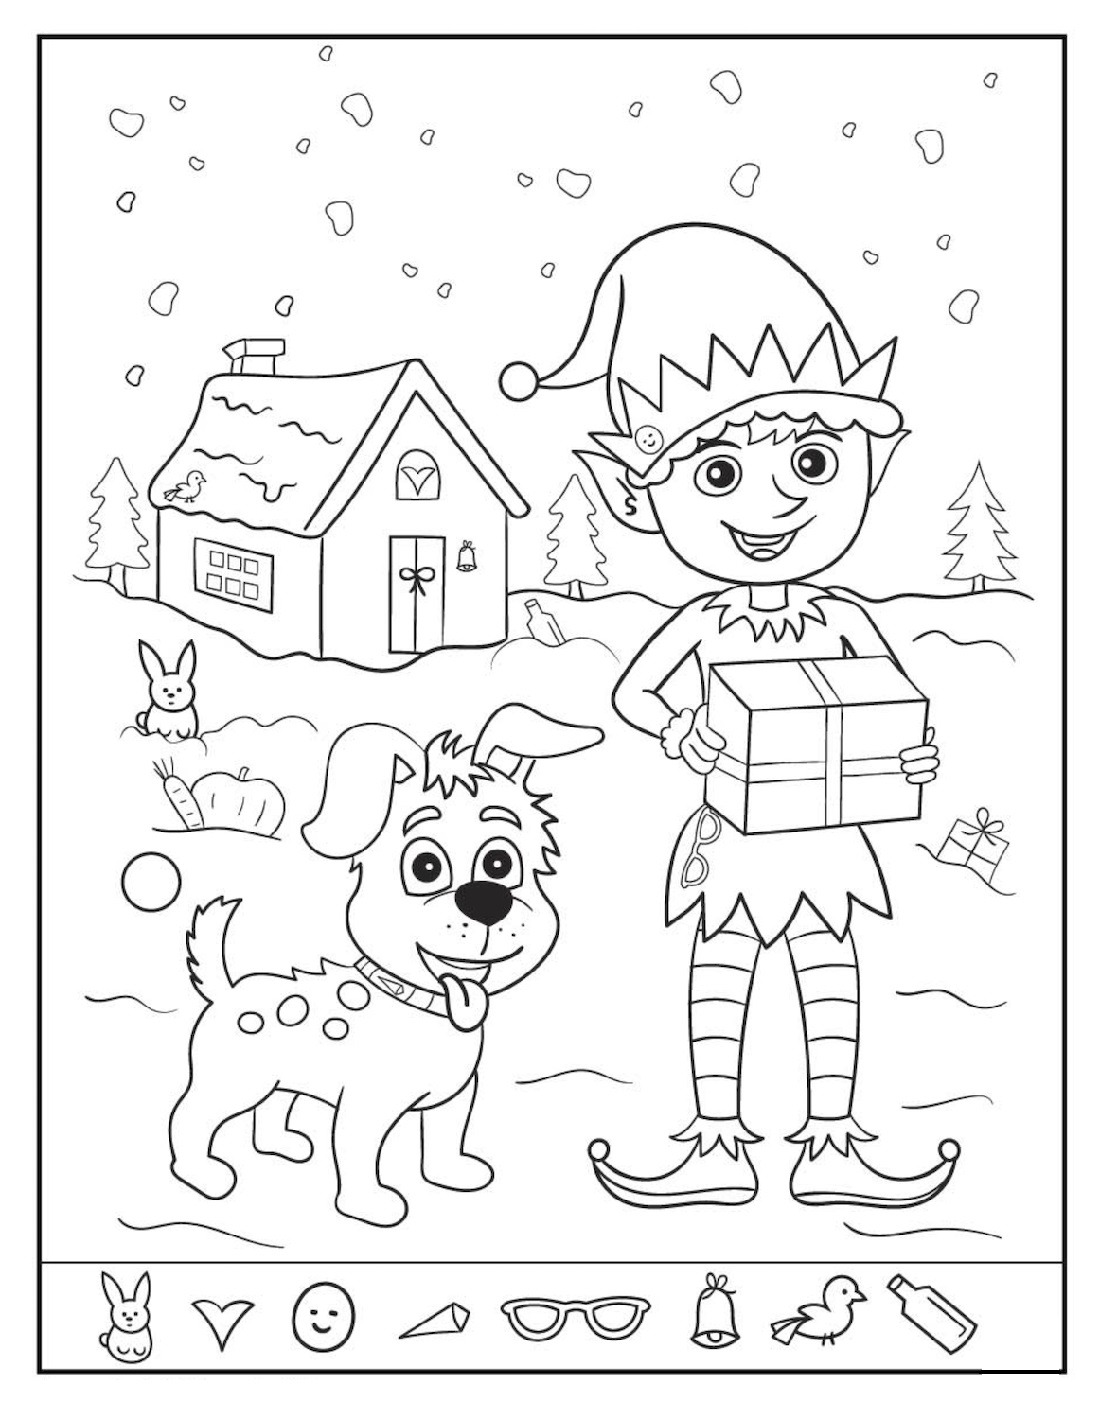 Easy And Hard Hidden Pictures Worksheet Pintable